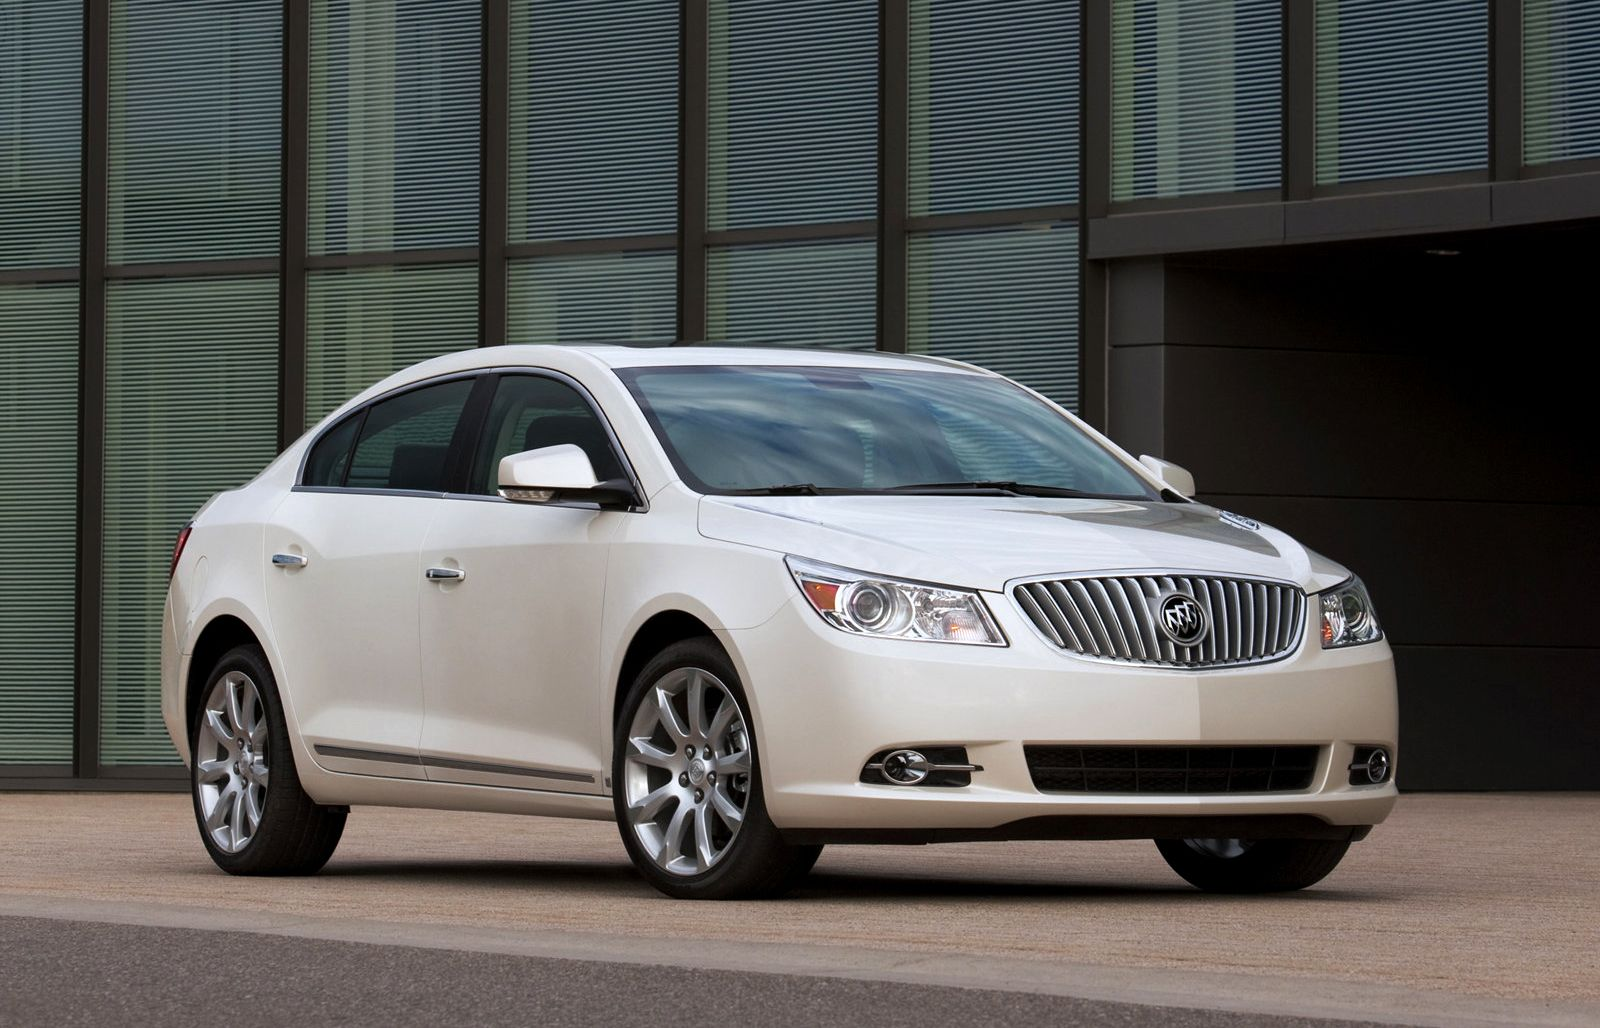 2012 Buick Lacrosse Eassist Pearl White Photo 2012 Buick Lacrosse Eassist Pearl White Close Up View Buick Lacrosse Buick 2012 Buick Lacrosse